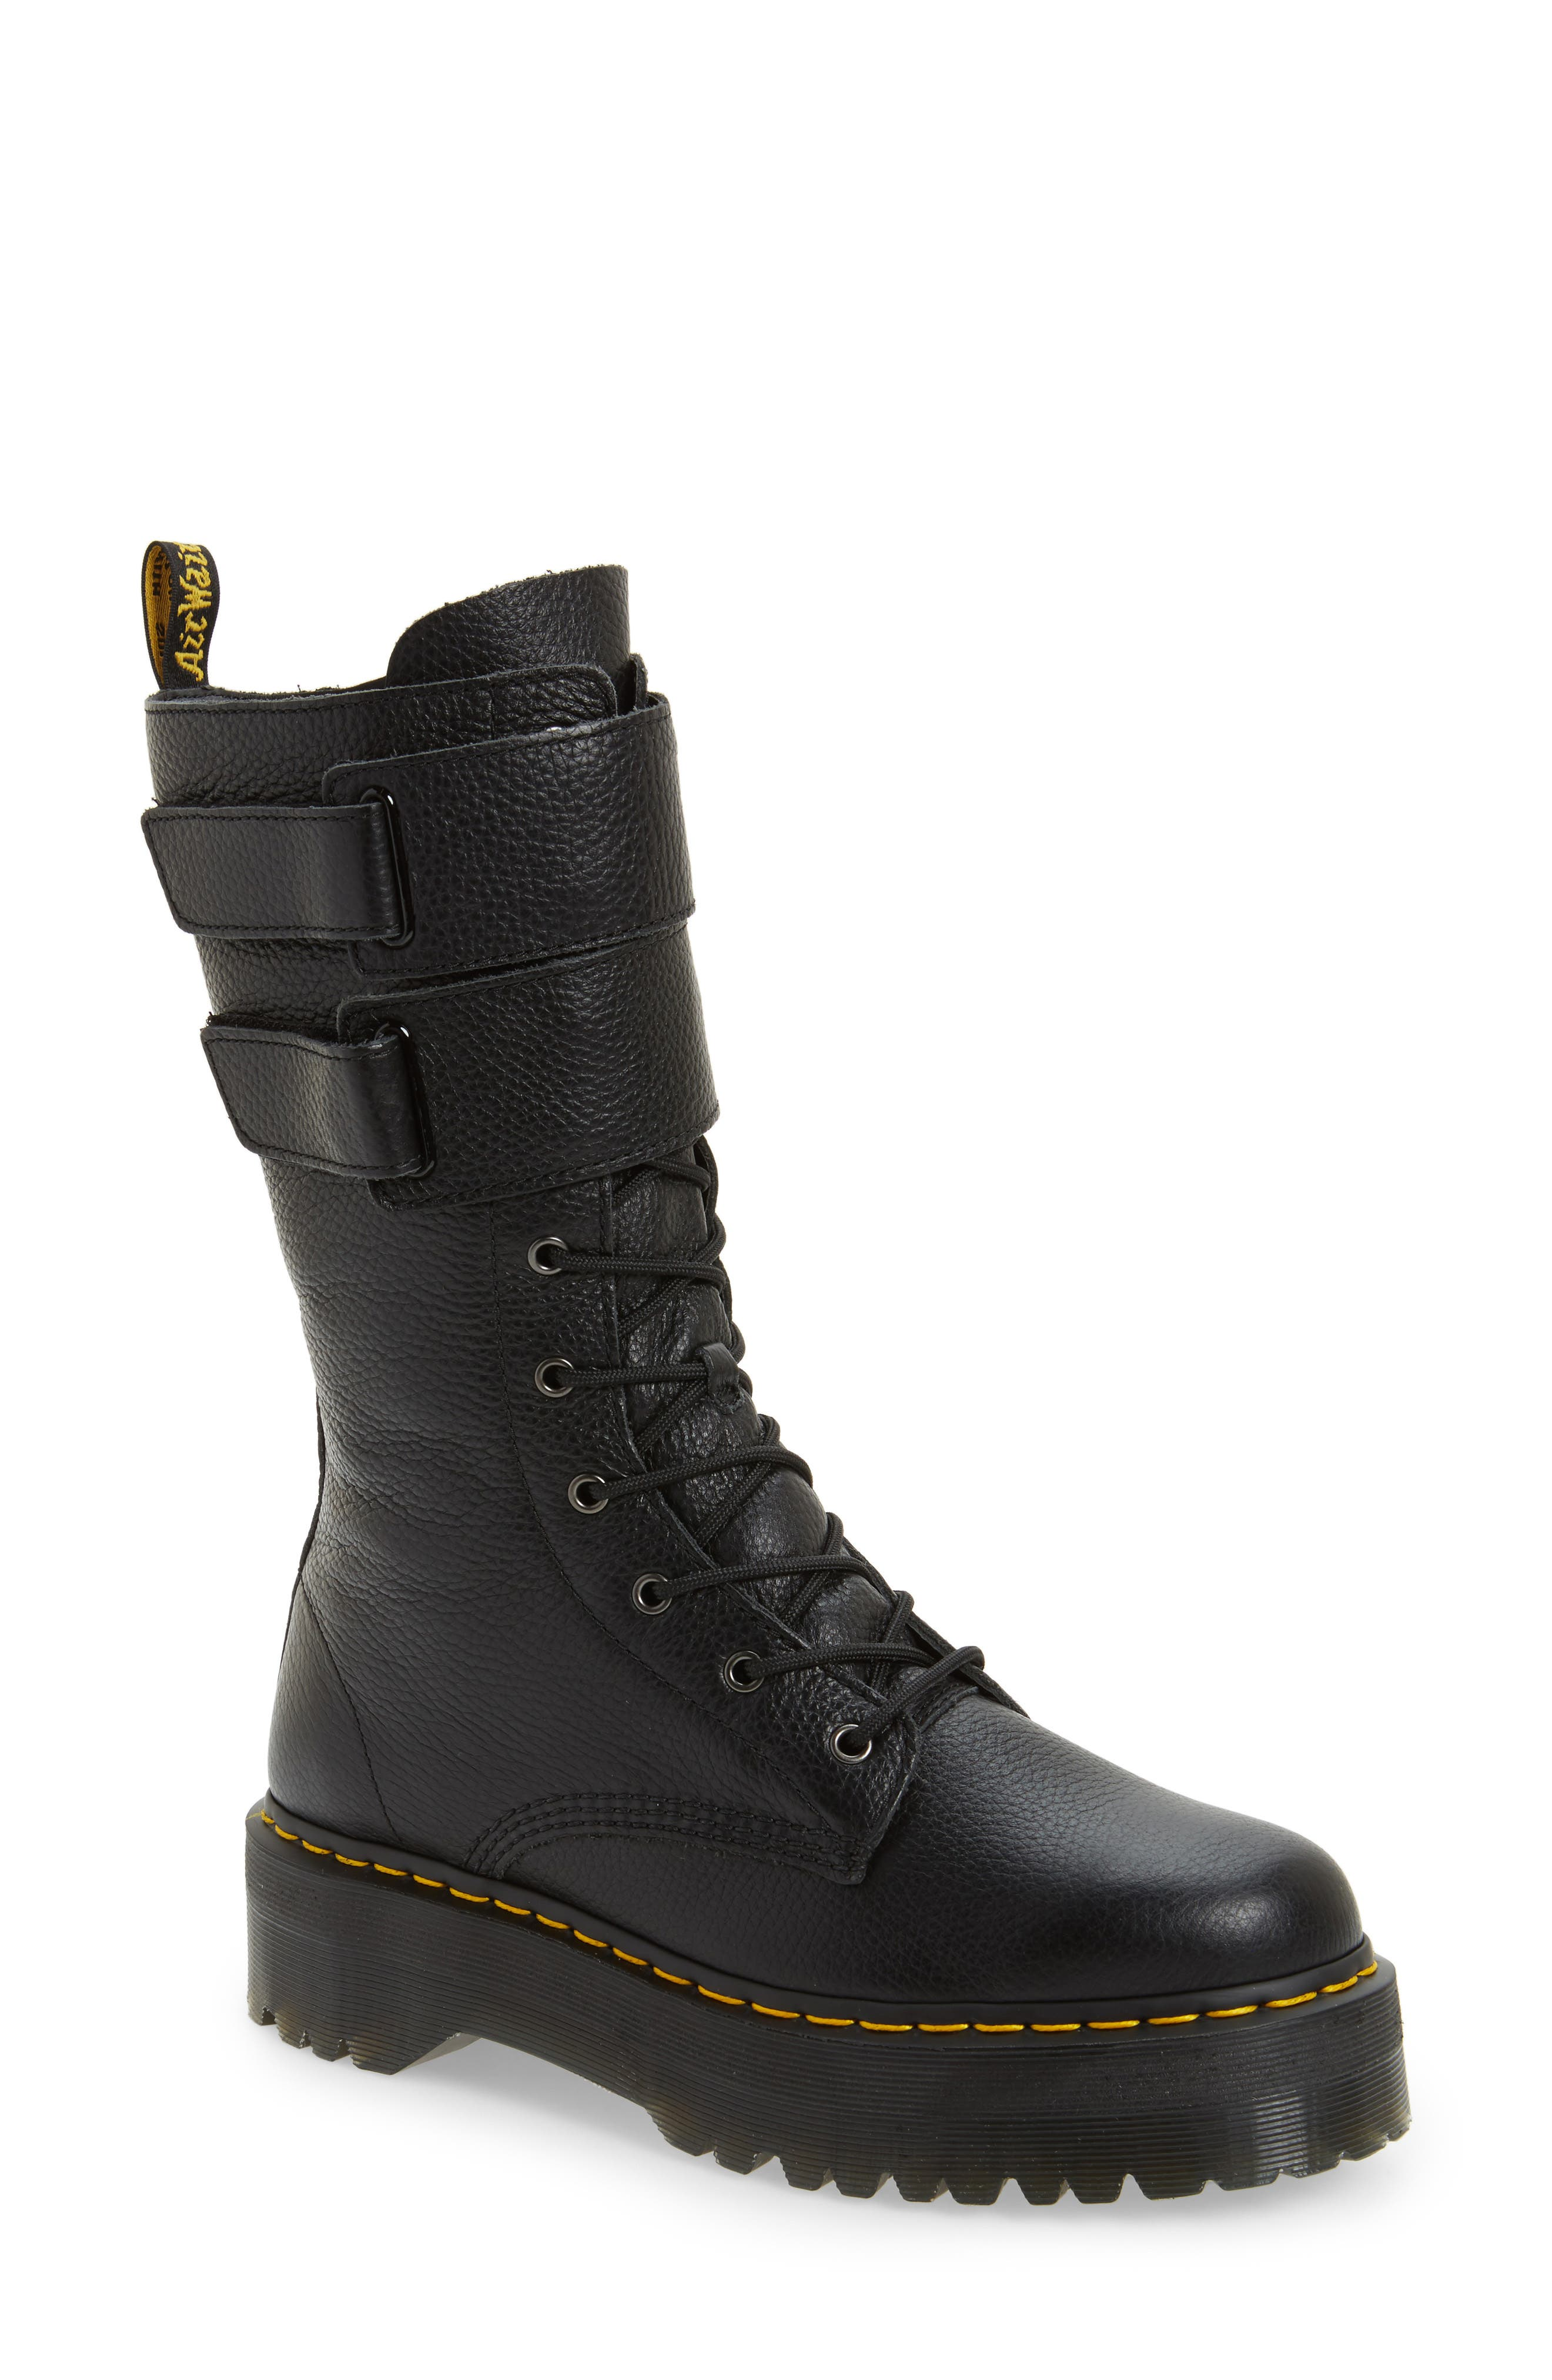 Jagger Combat Boot,                         Main,                         color, Black Leather